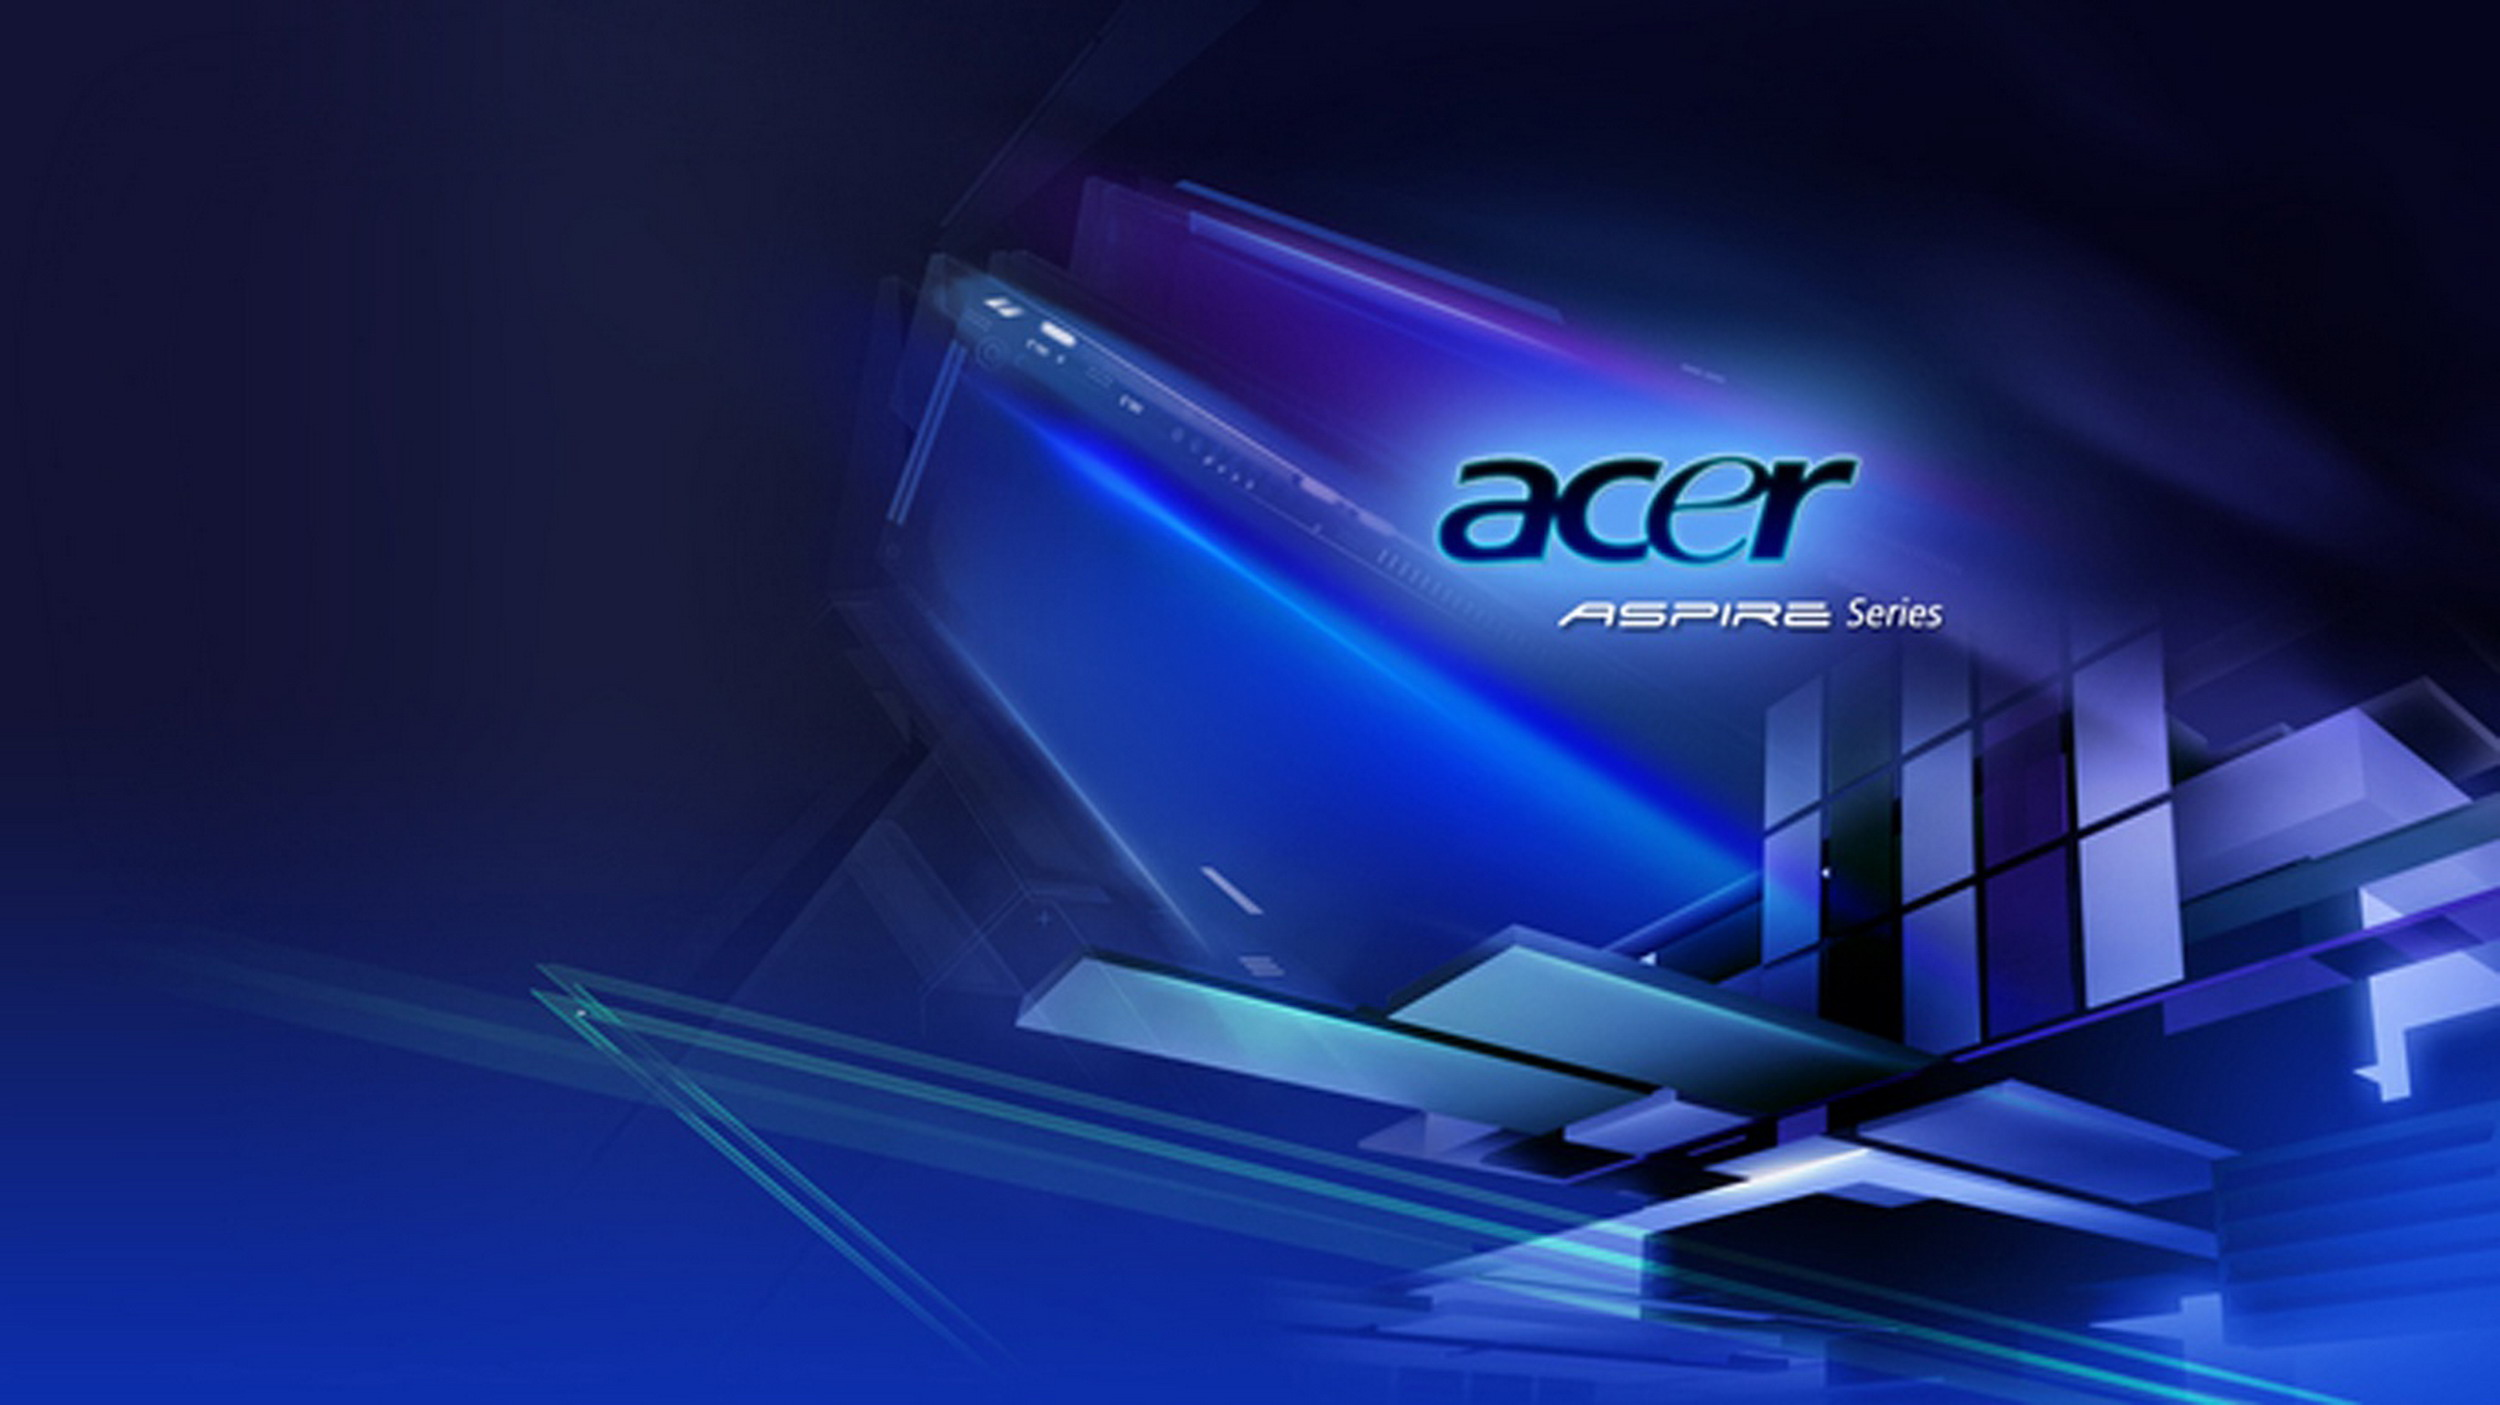 Acer Aspire Blue Logo Wallpaper Desktop 7570 Wallpaper 2500x1405